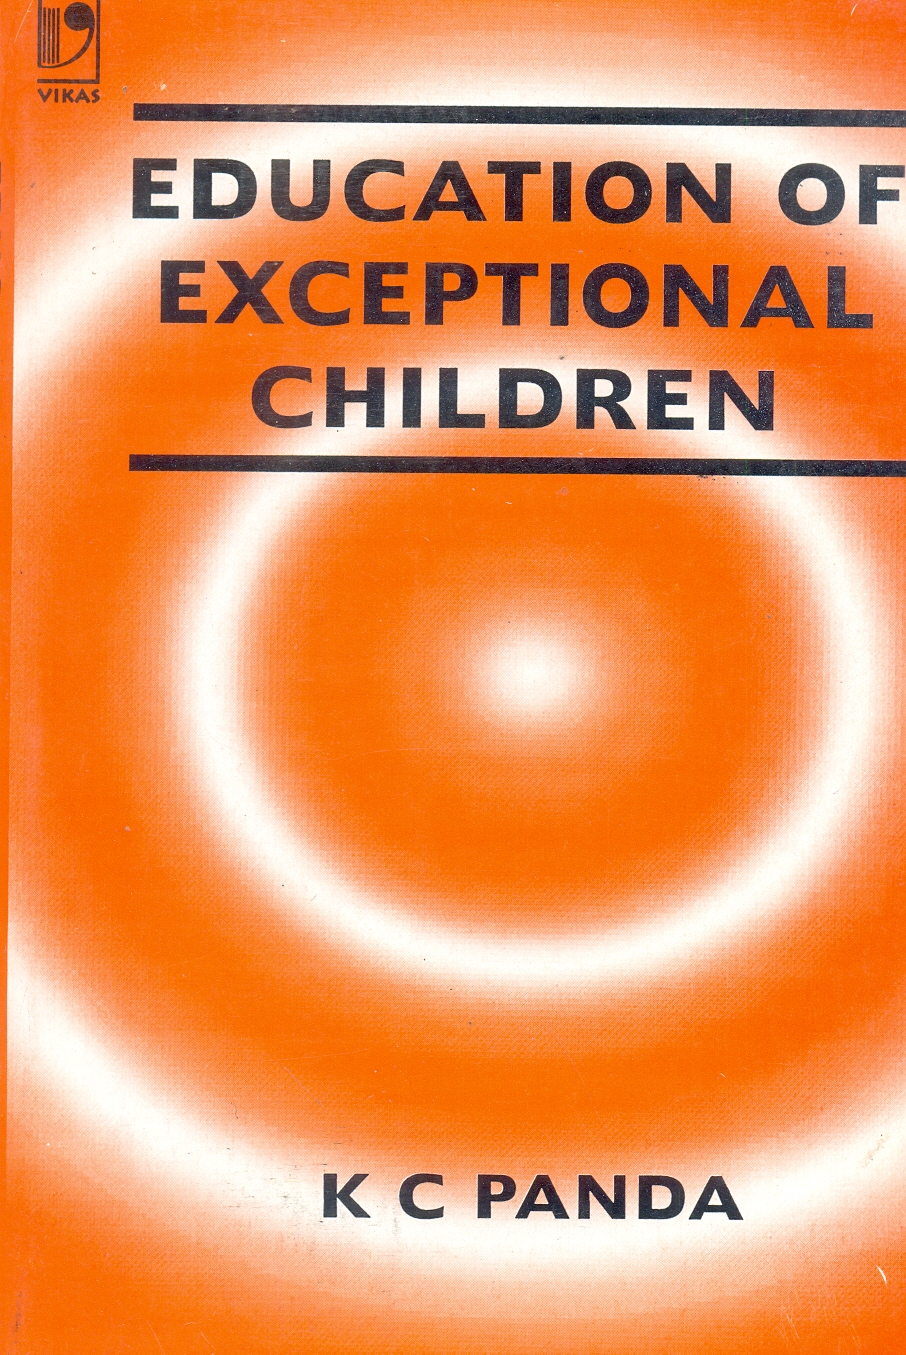 Education of Exceptional Children by  K.C. Panda